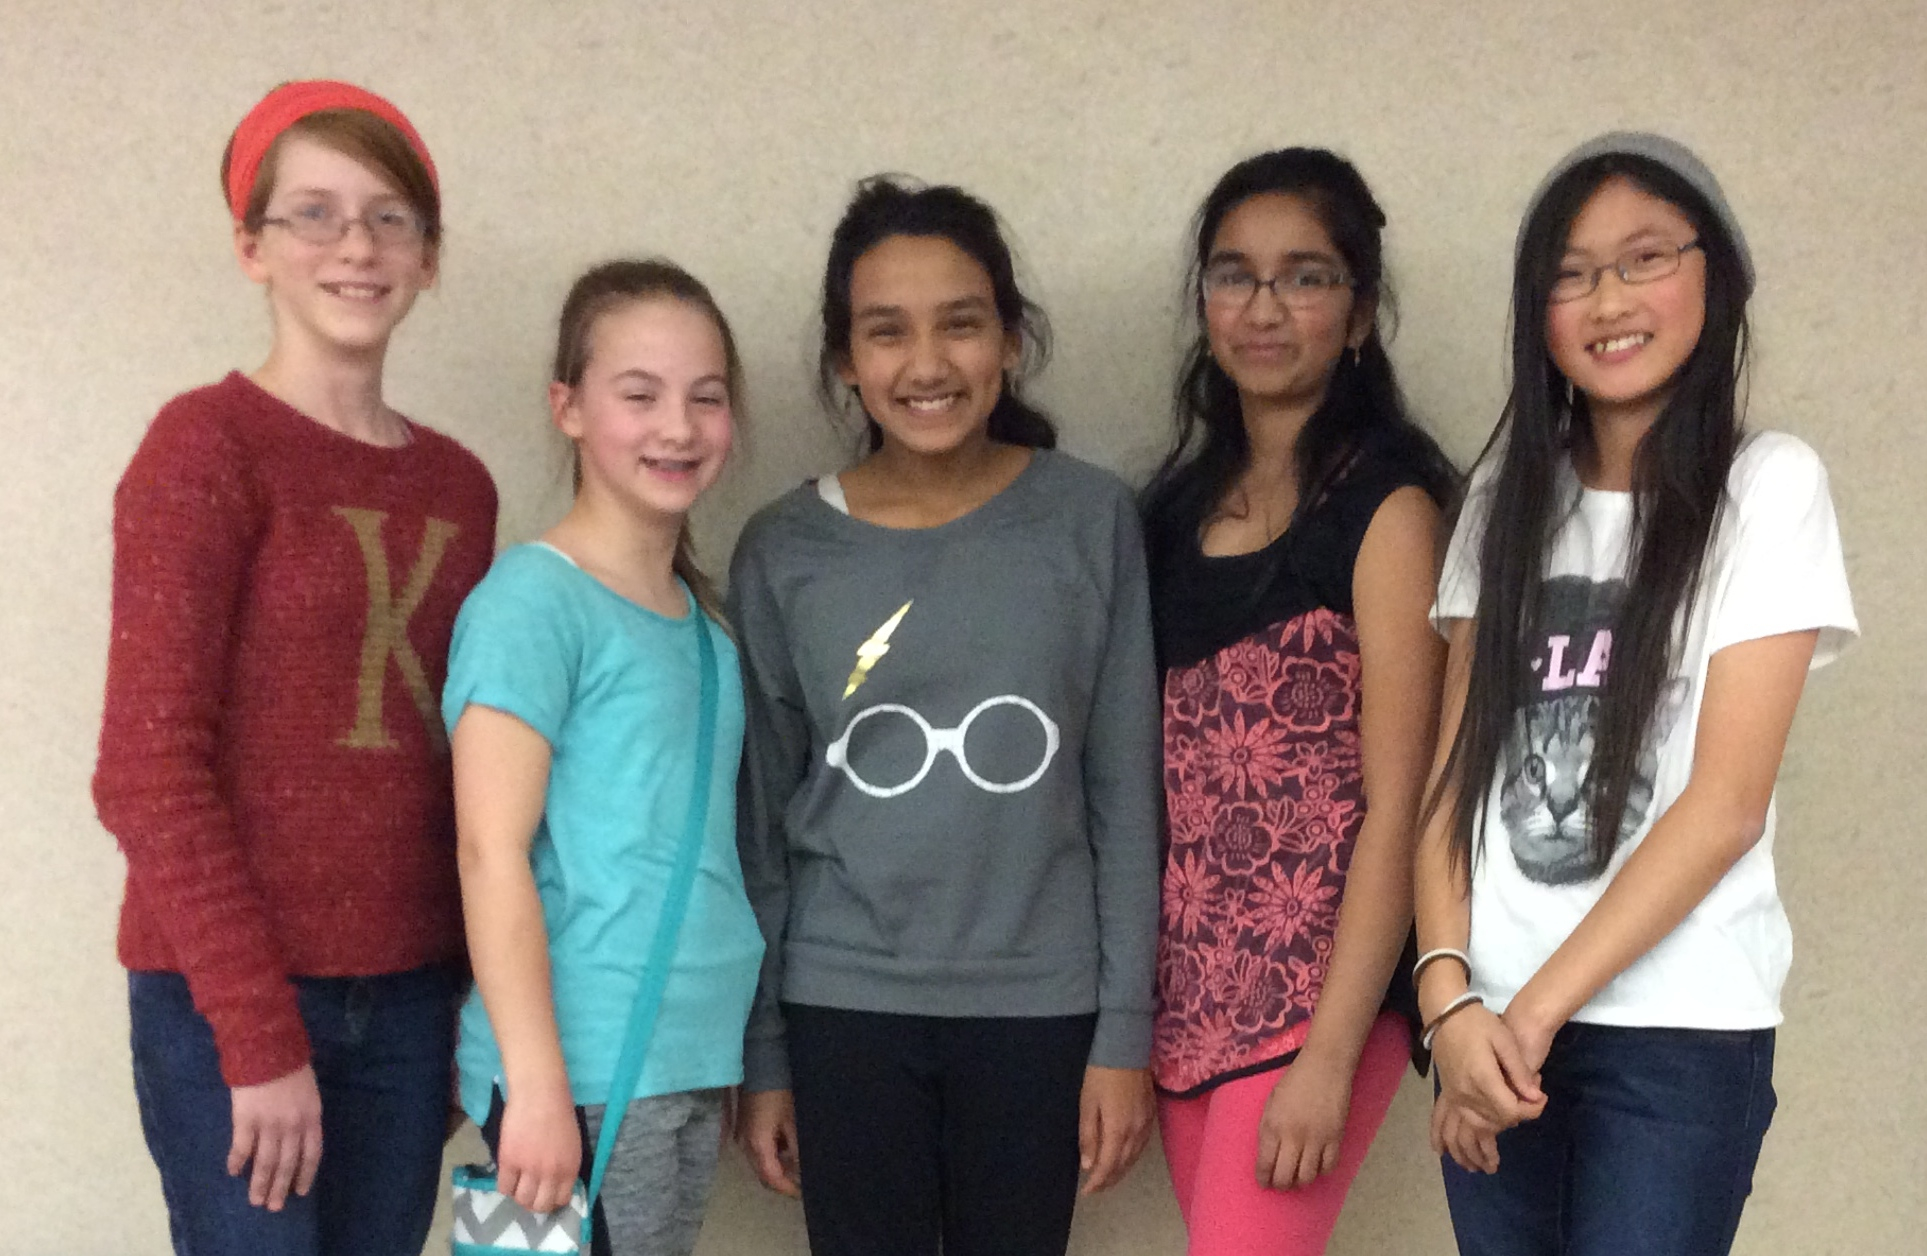 Pictured from left to right:  Katja, Alyssa, Sreya, Sudhiksha, and Eilene.